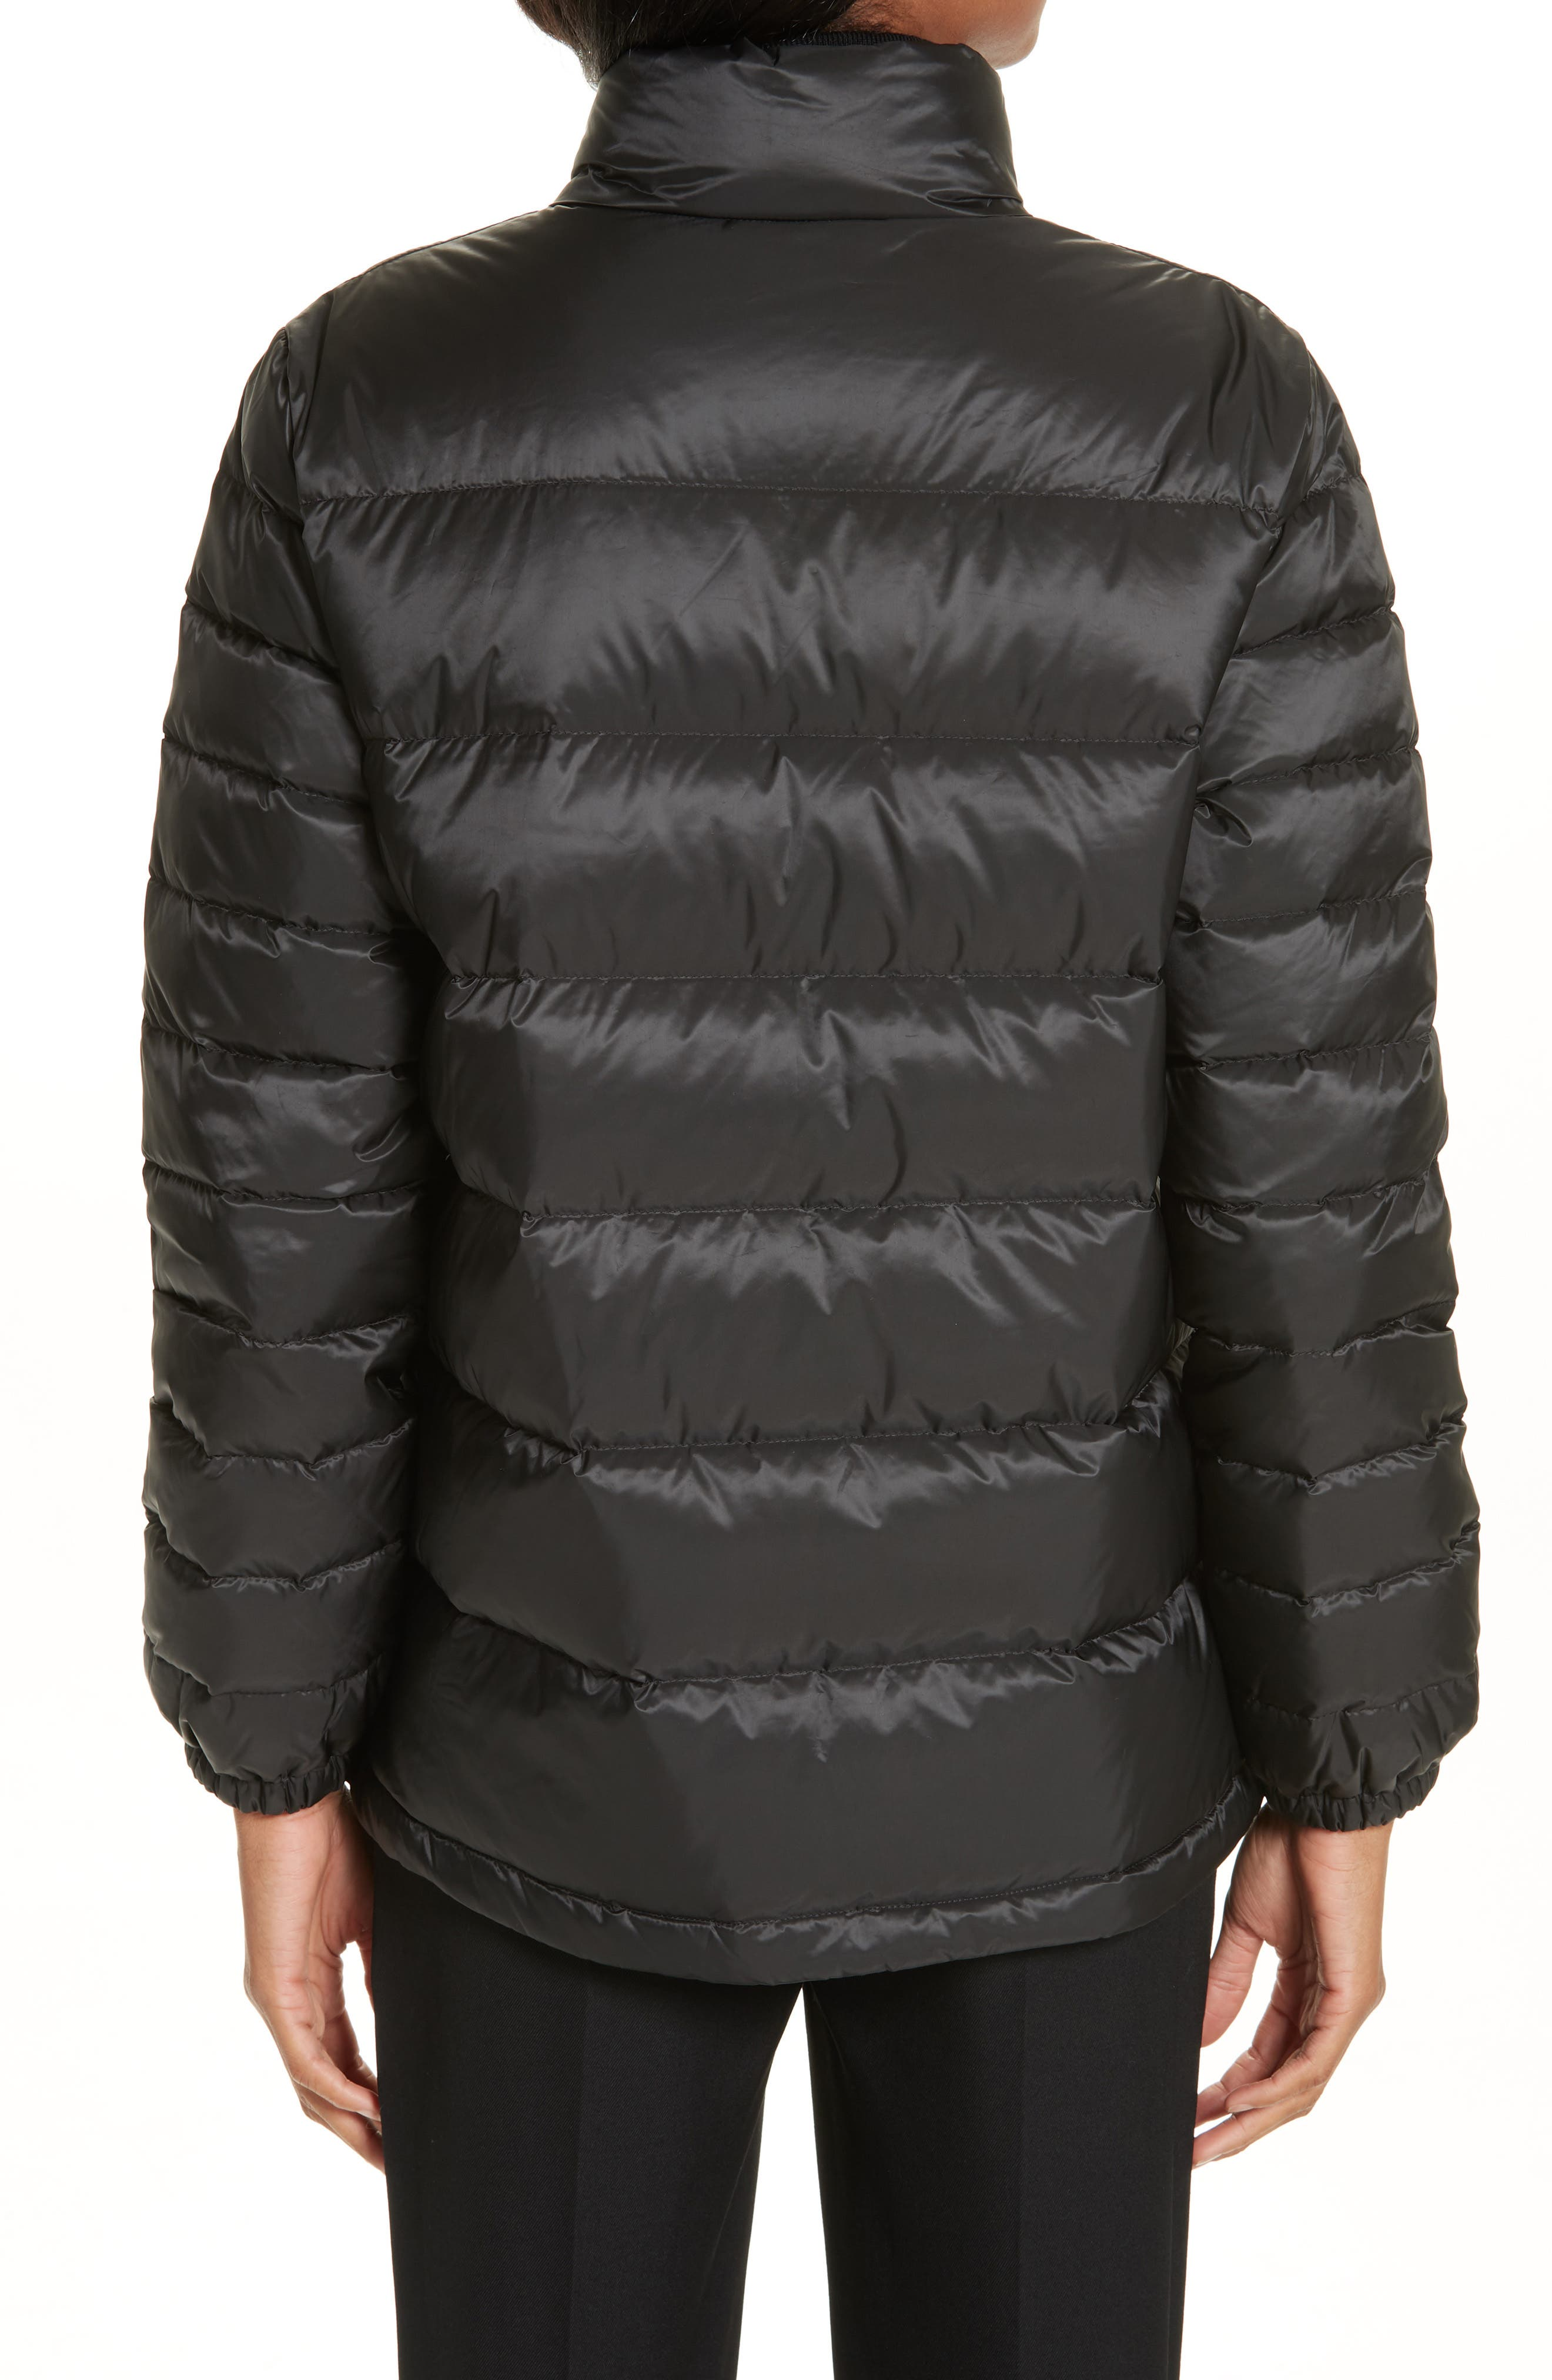 BURBERRY, Smethwick Archive Logo Quilted Down Puffer Coat, Alternate thumbnail 2, color, BLACK